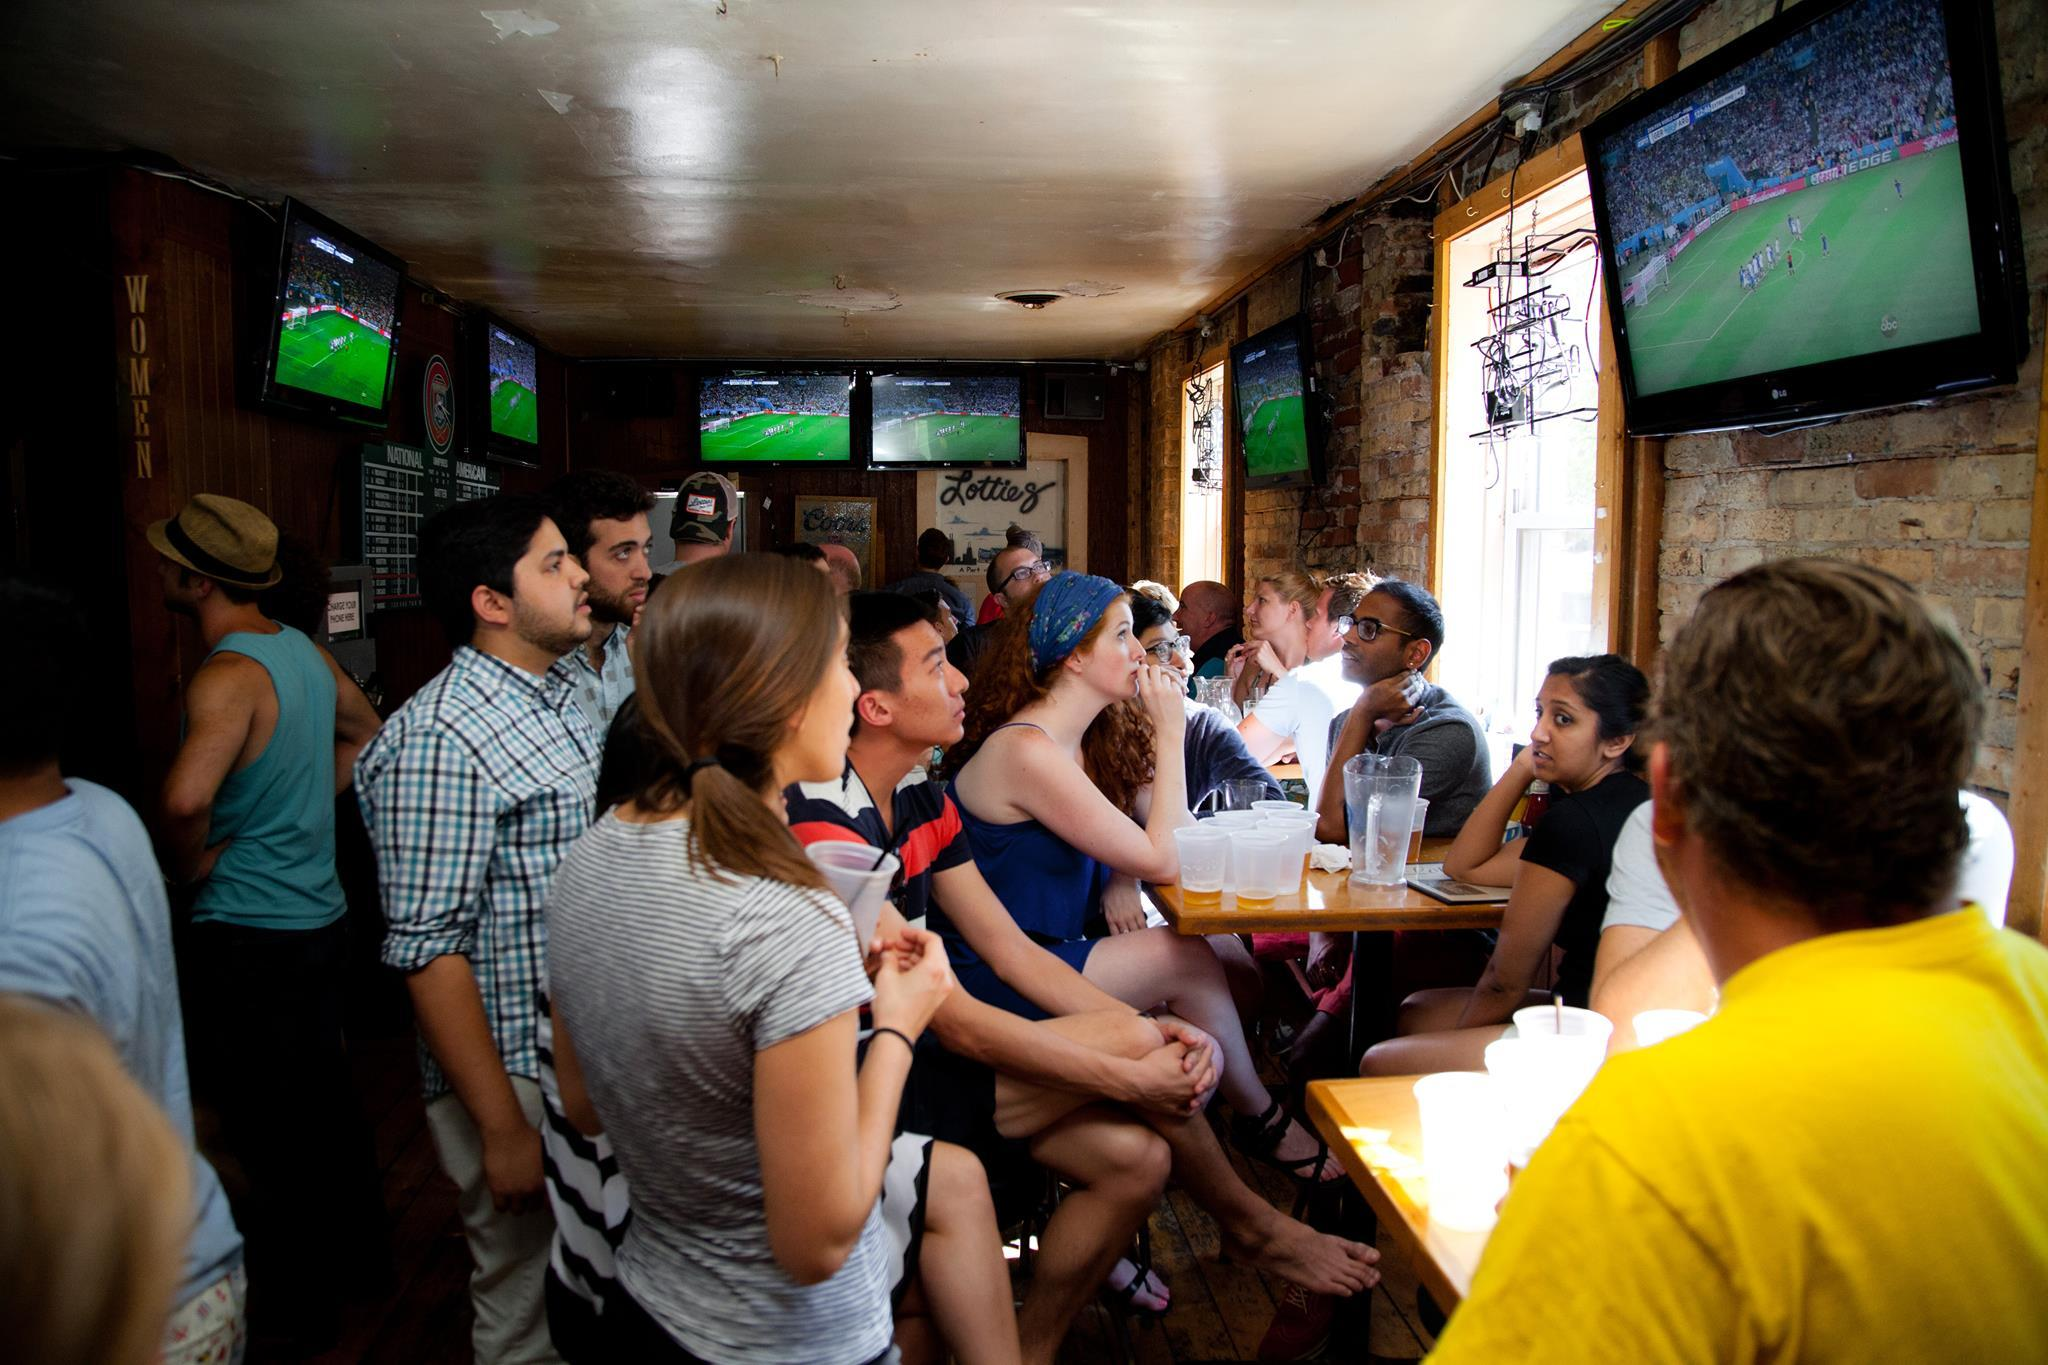 Five top bars for watching the rest of March Madness